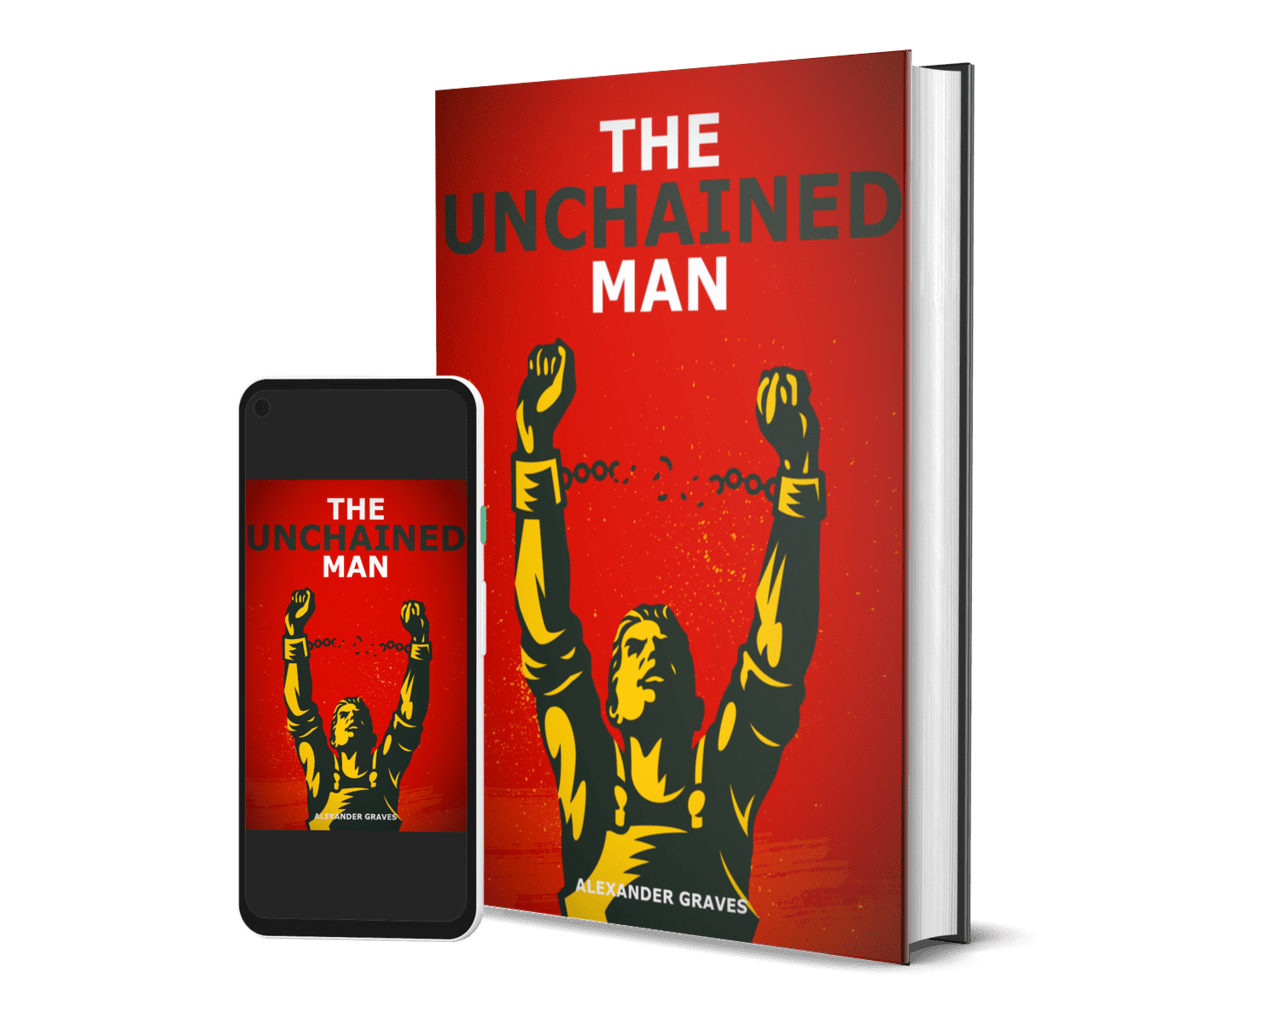 the unchained man 3d book and ebook cover